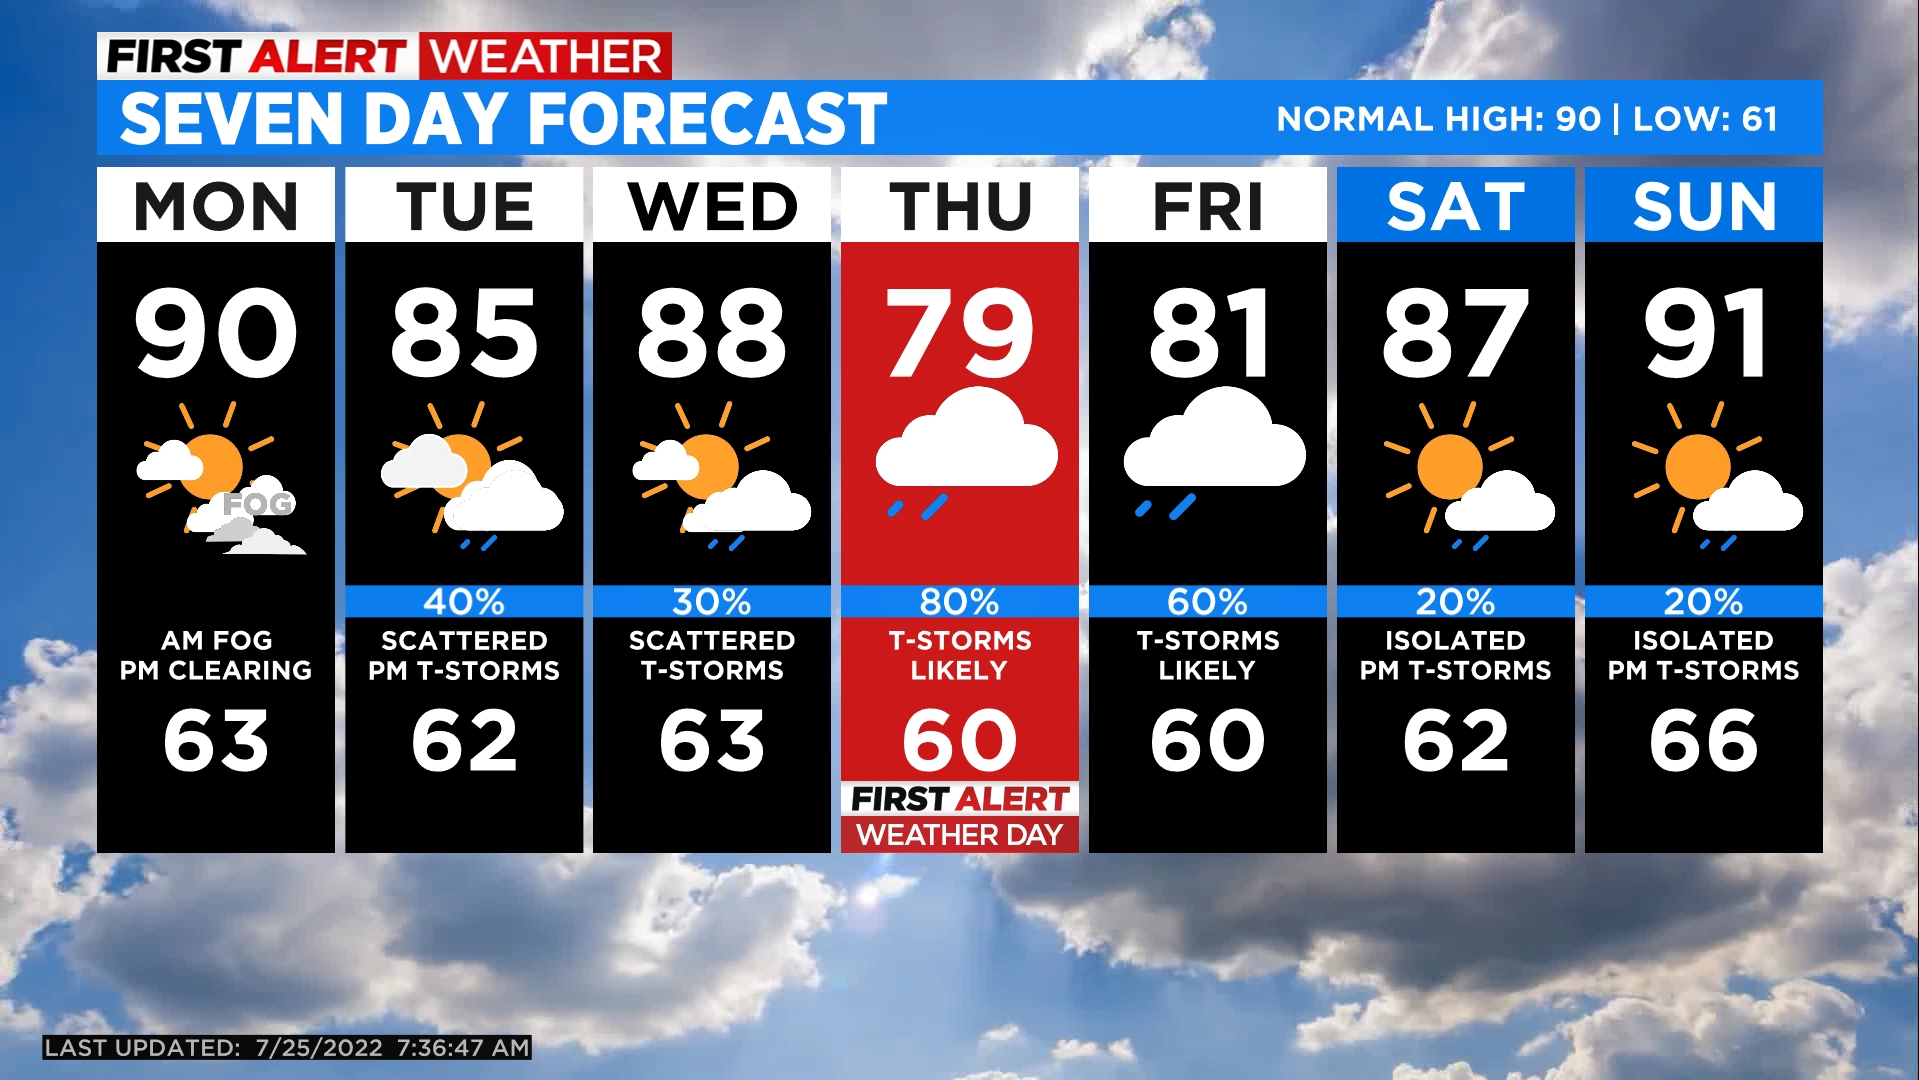 5day Cool Down Is Short Lived, Warmer Temps Return Soon